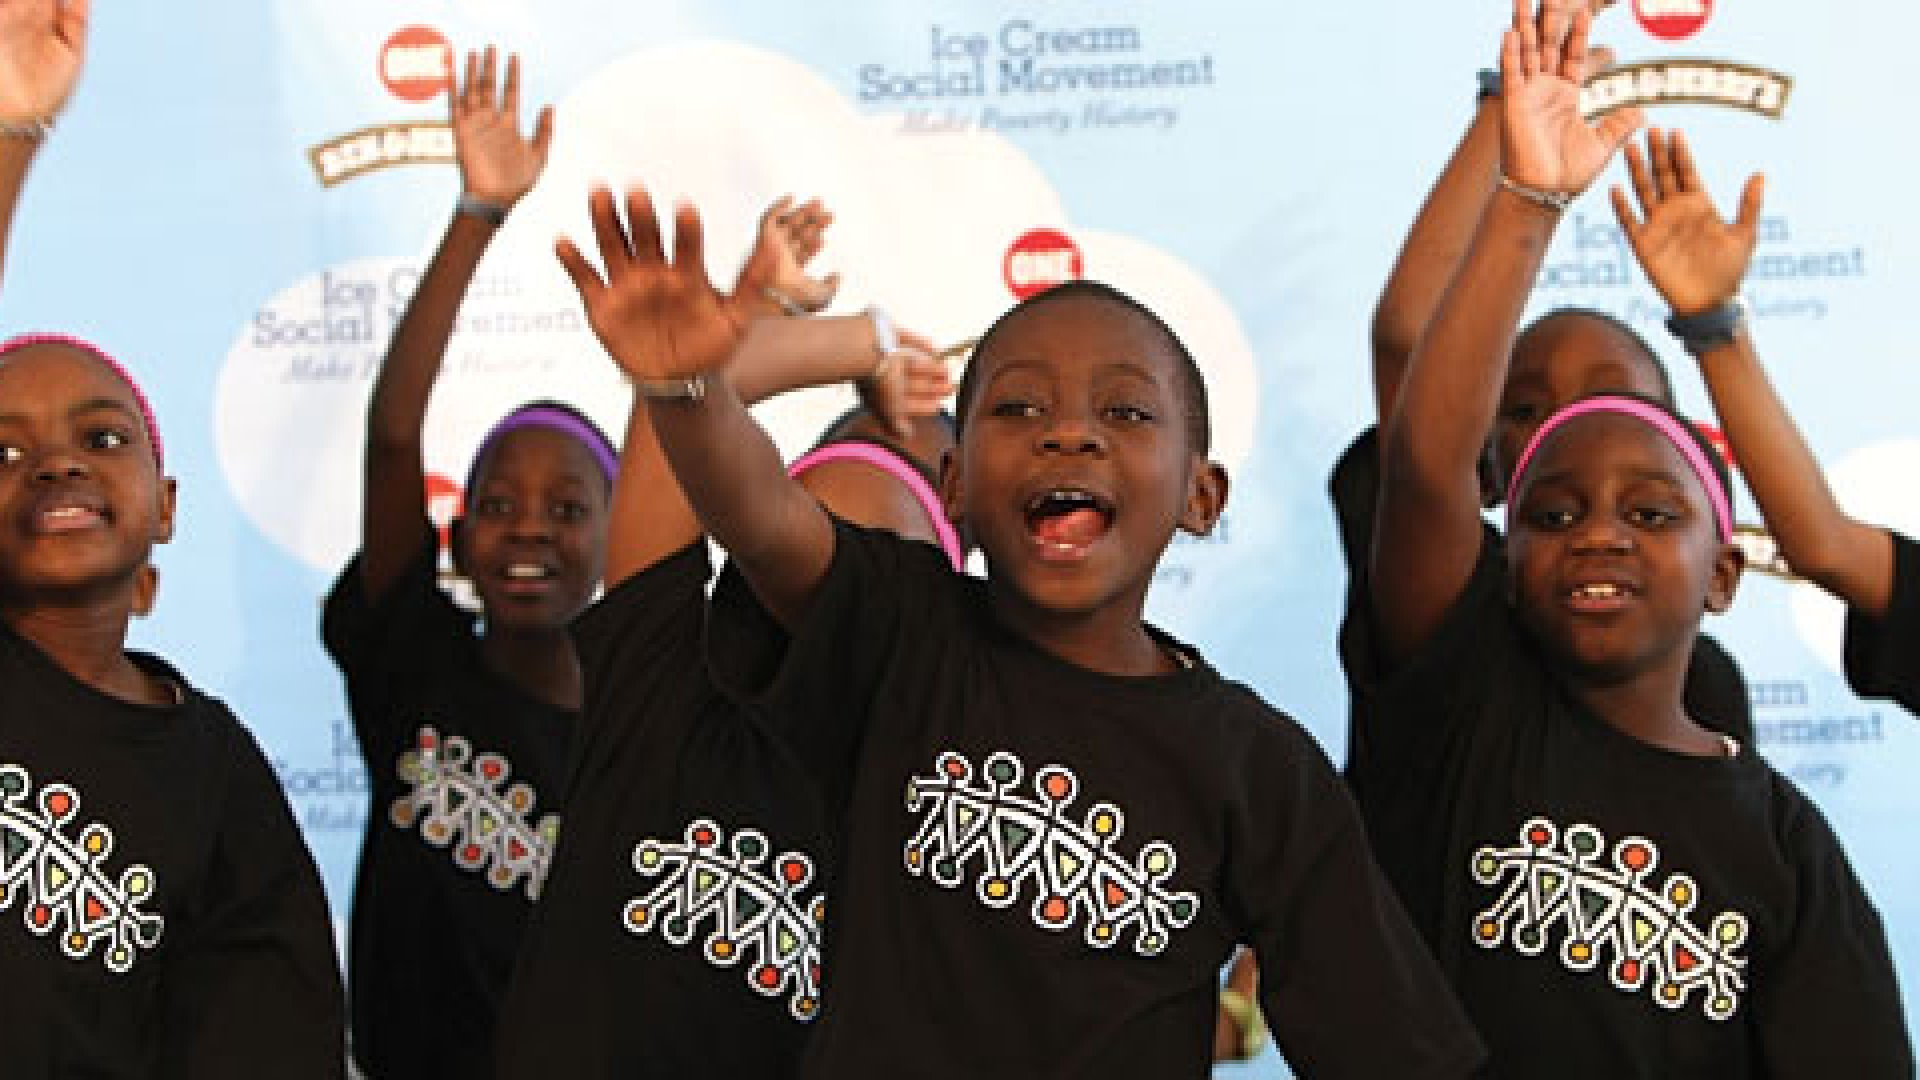 Members of the African Children's Choir perform at the partnership launch of Ben & Jerry's and The ONE campaign's fight against global poverty at a Ben & Jerry's store